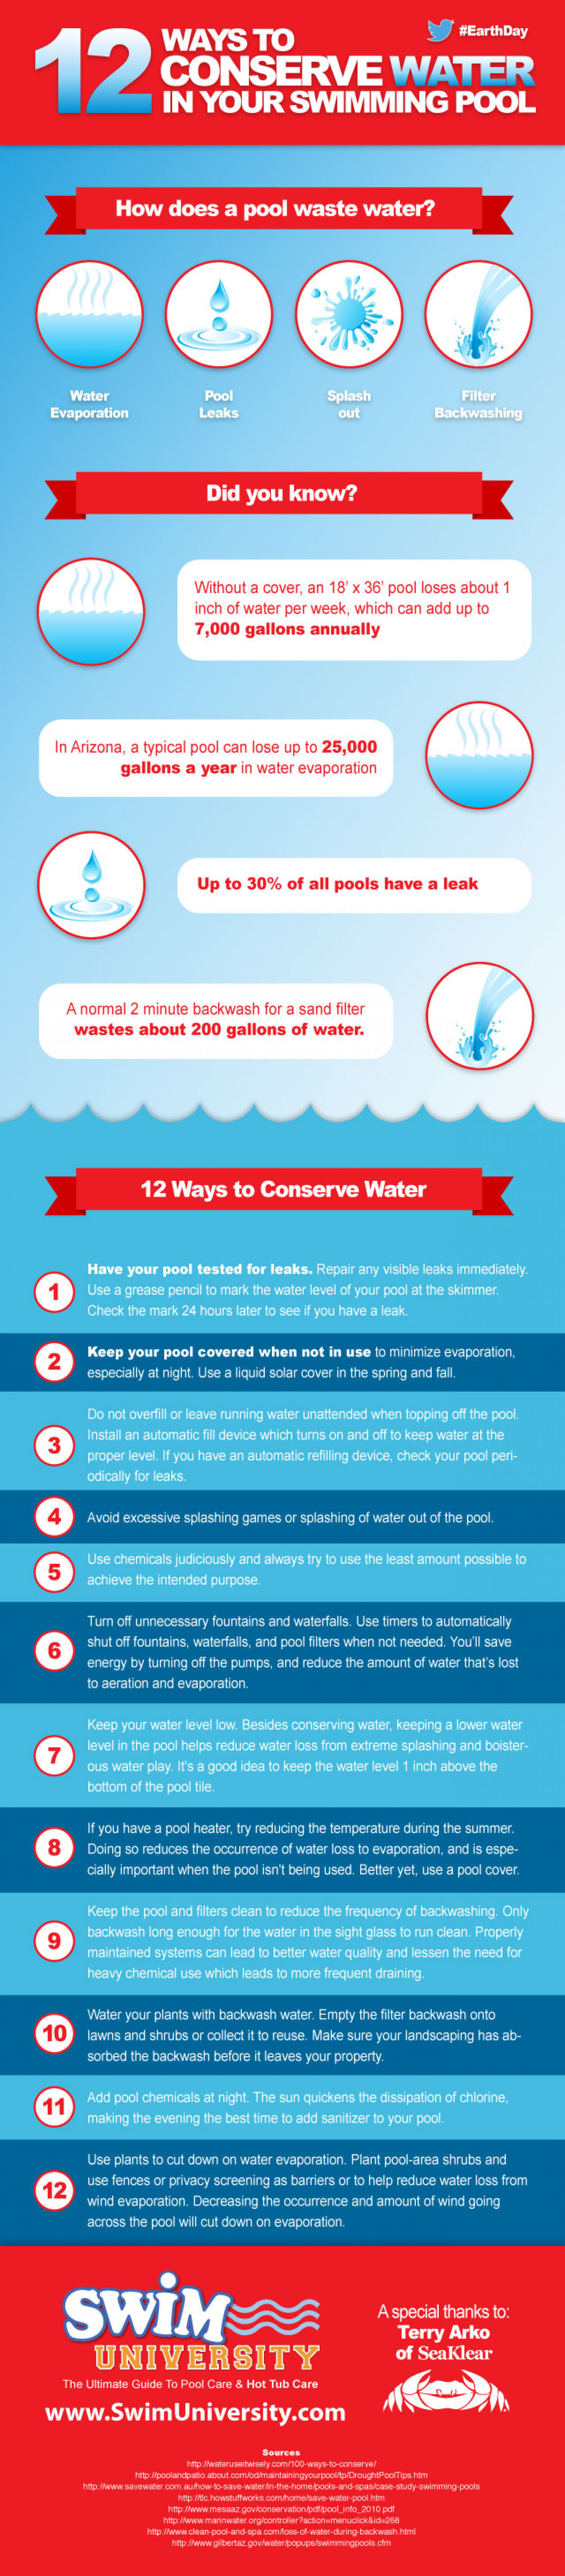 12 Ways to Conserve Water in your Swimming Pool Infographic